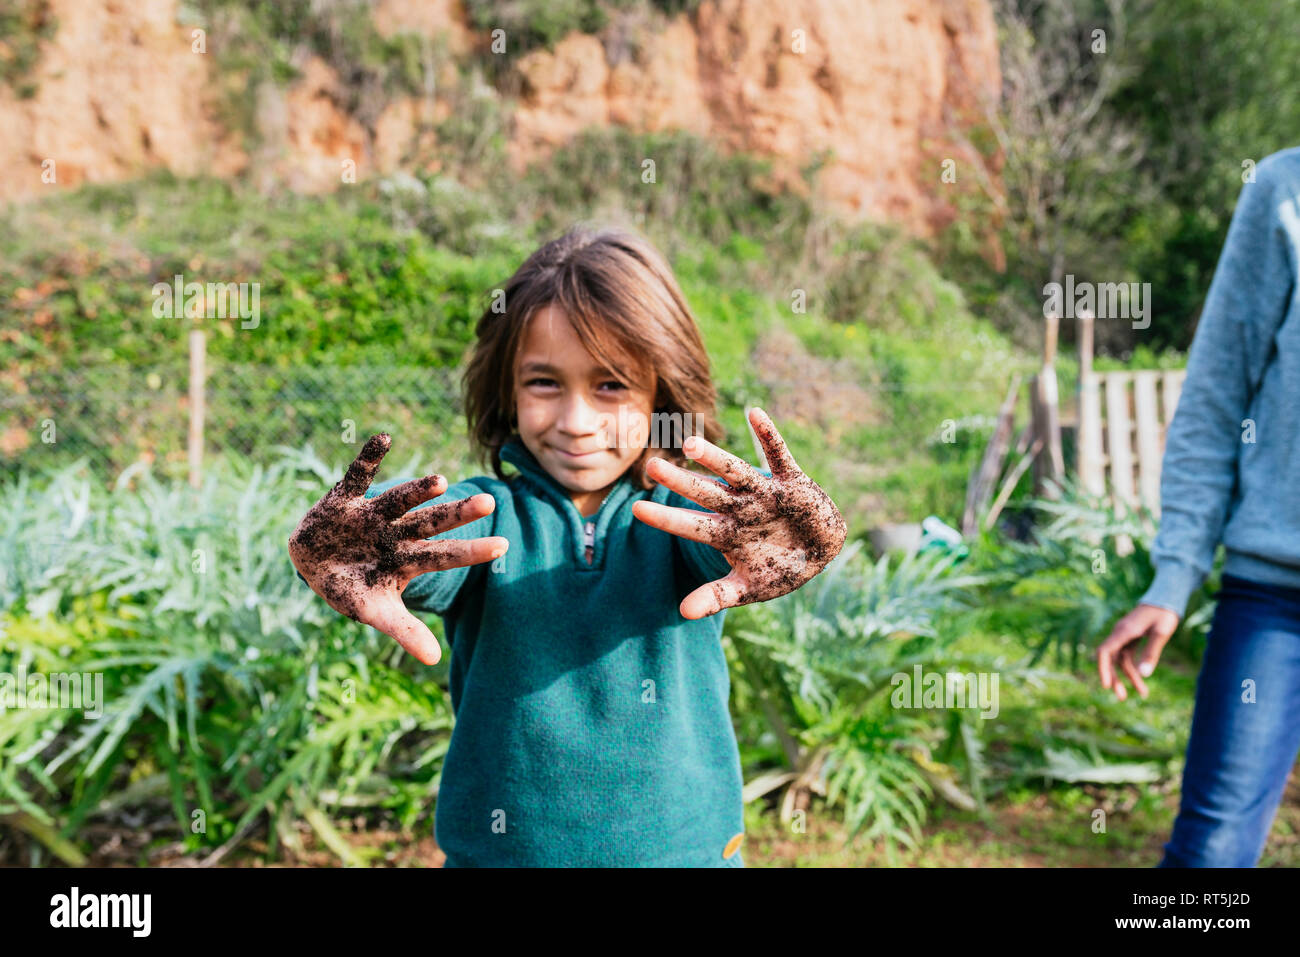 Boy showing his messy hands, full of soil - Stock Image